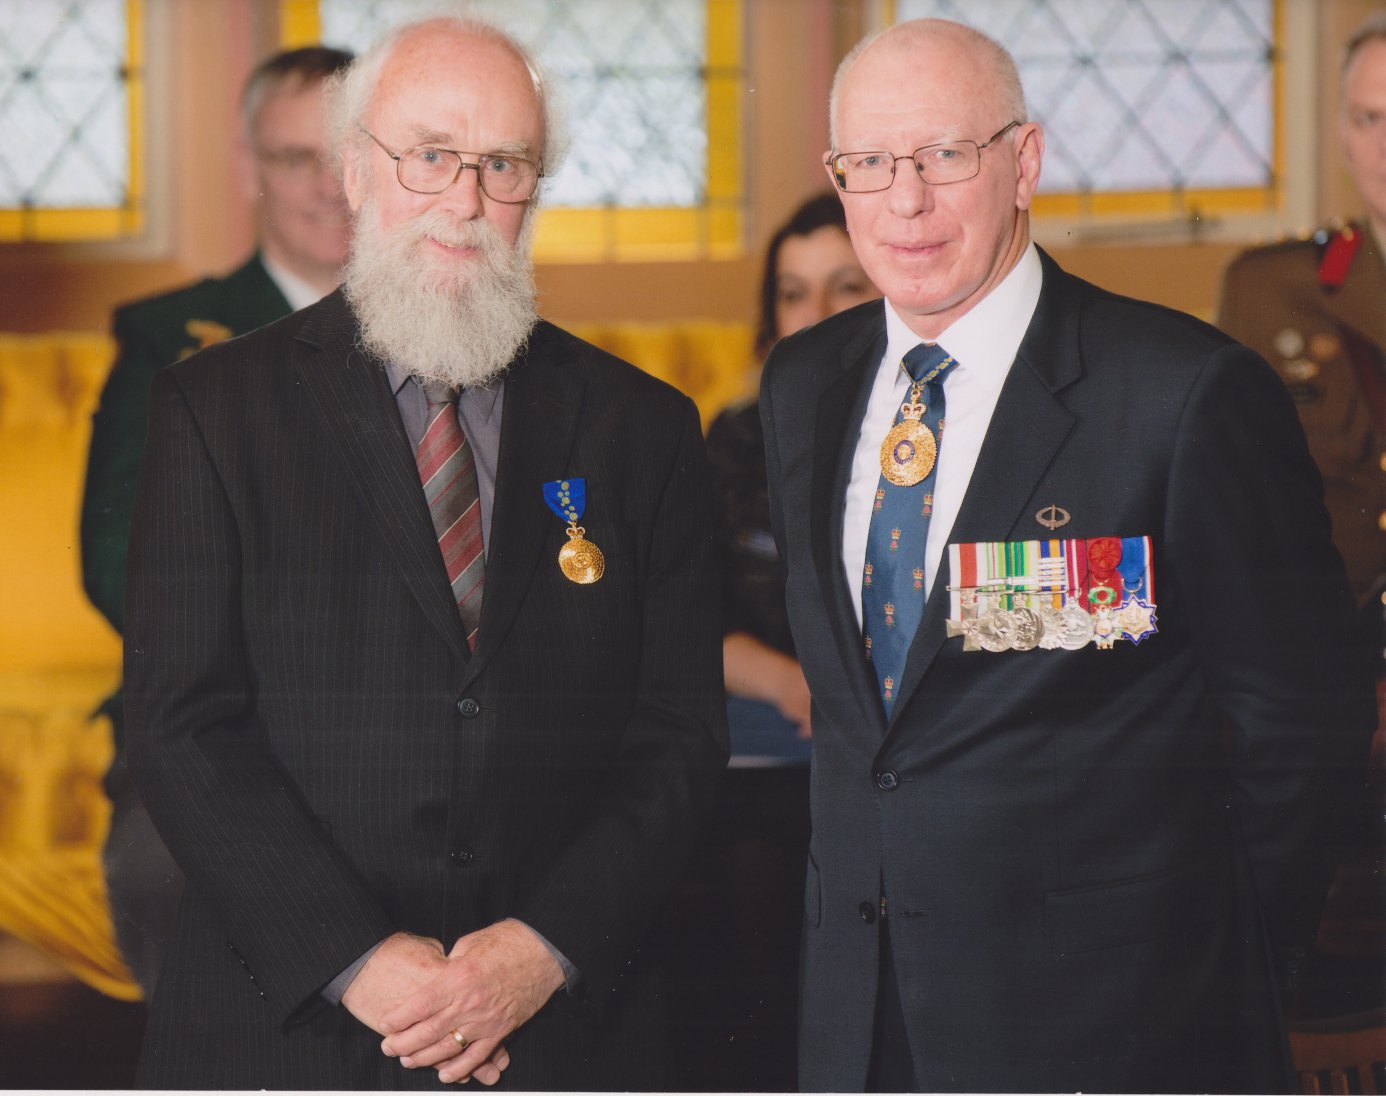 Geoff Williams AM and His Excellency General The Honourable David Hurley AC DSC (Ret'd), Governor of New South Wales.